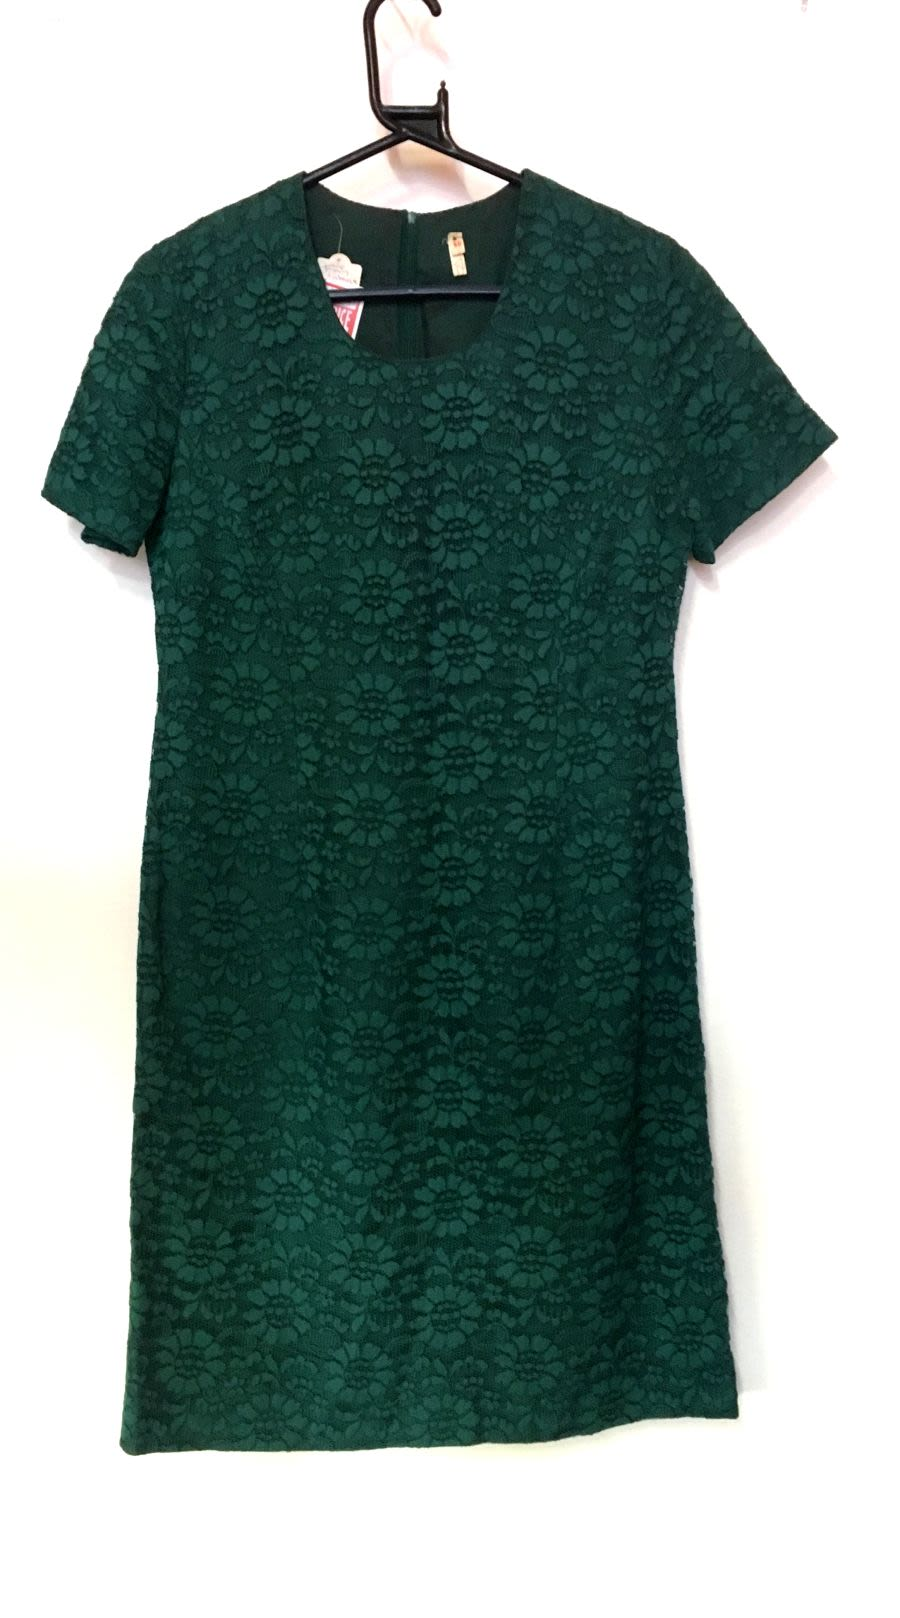 Vintage Women's 1960s Green Dress With Floral Lace Detail